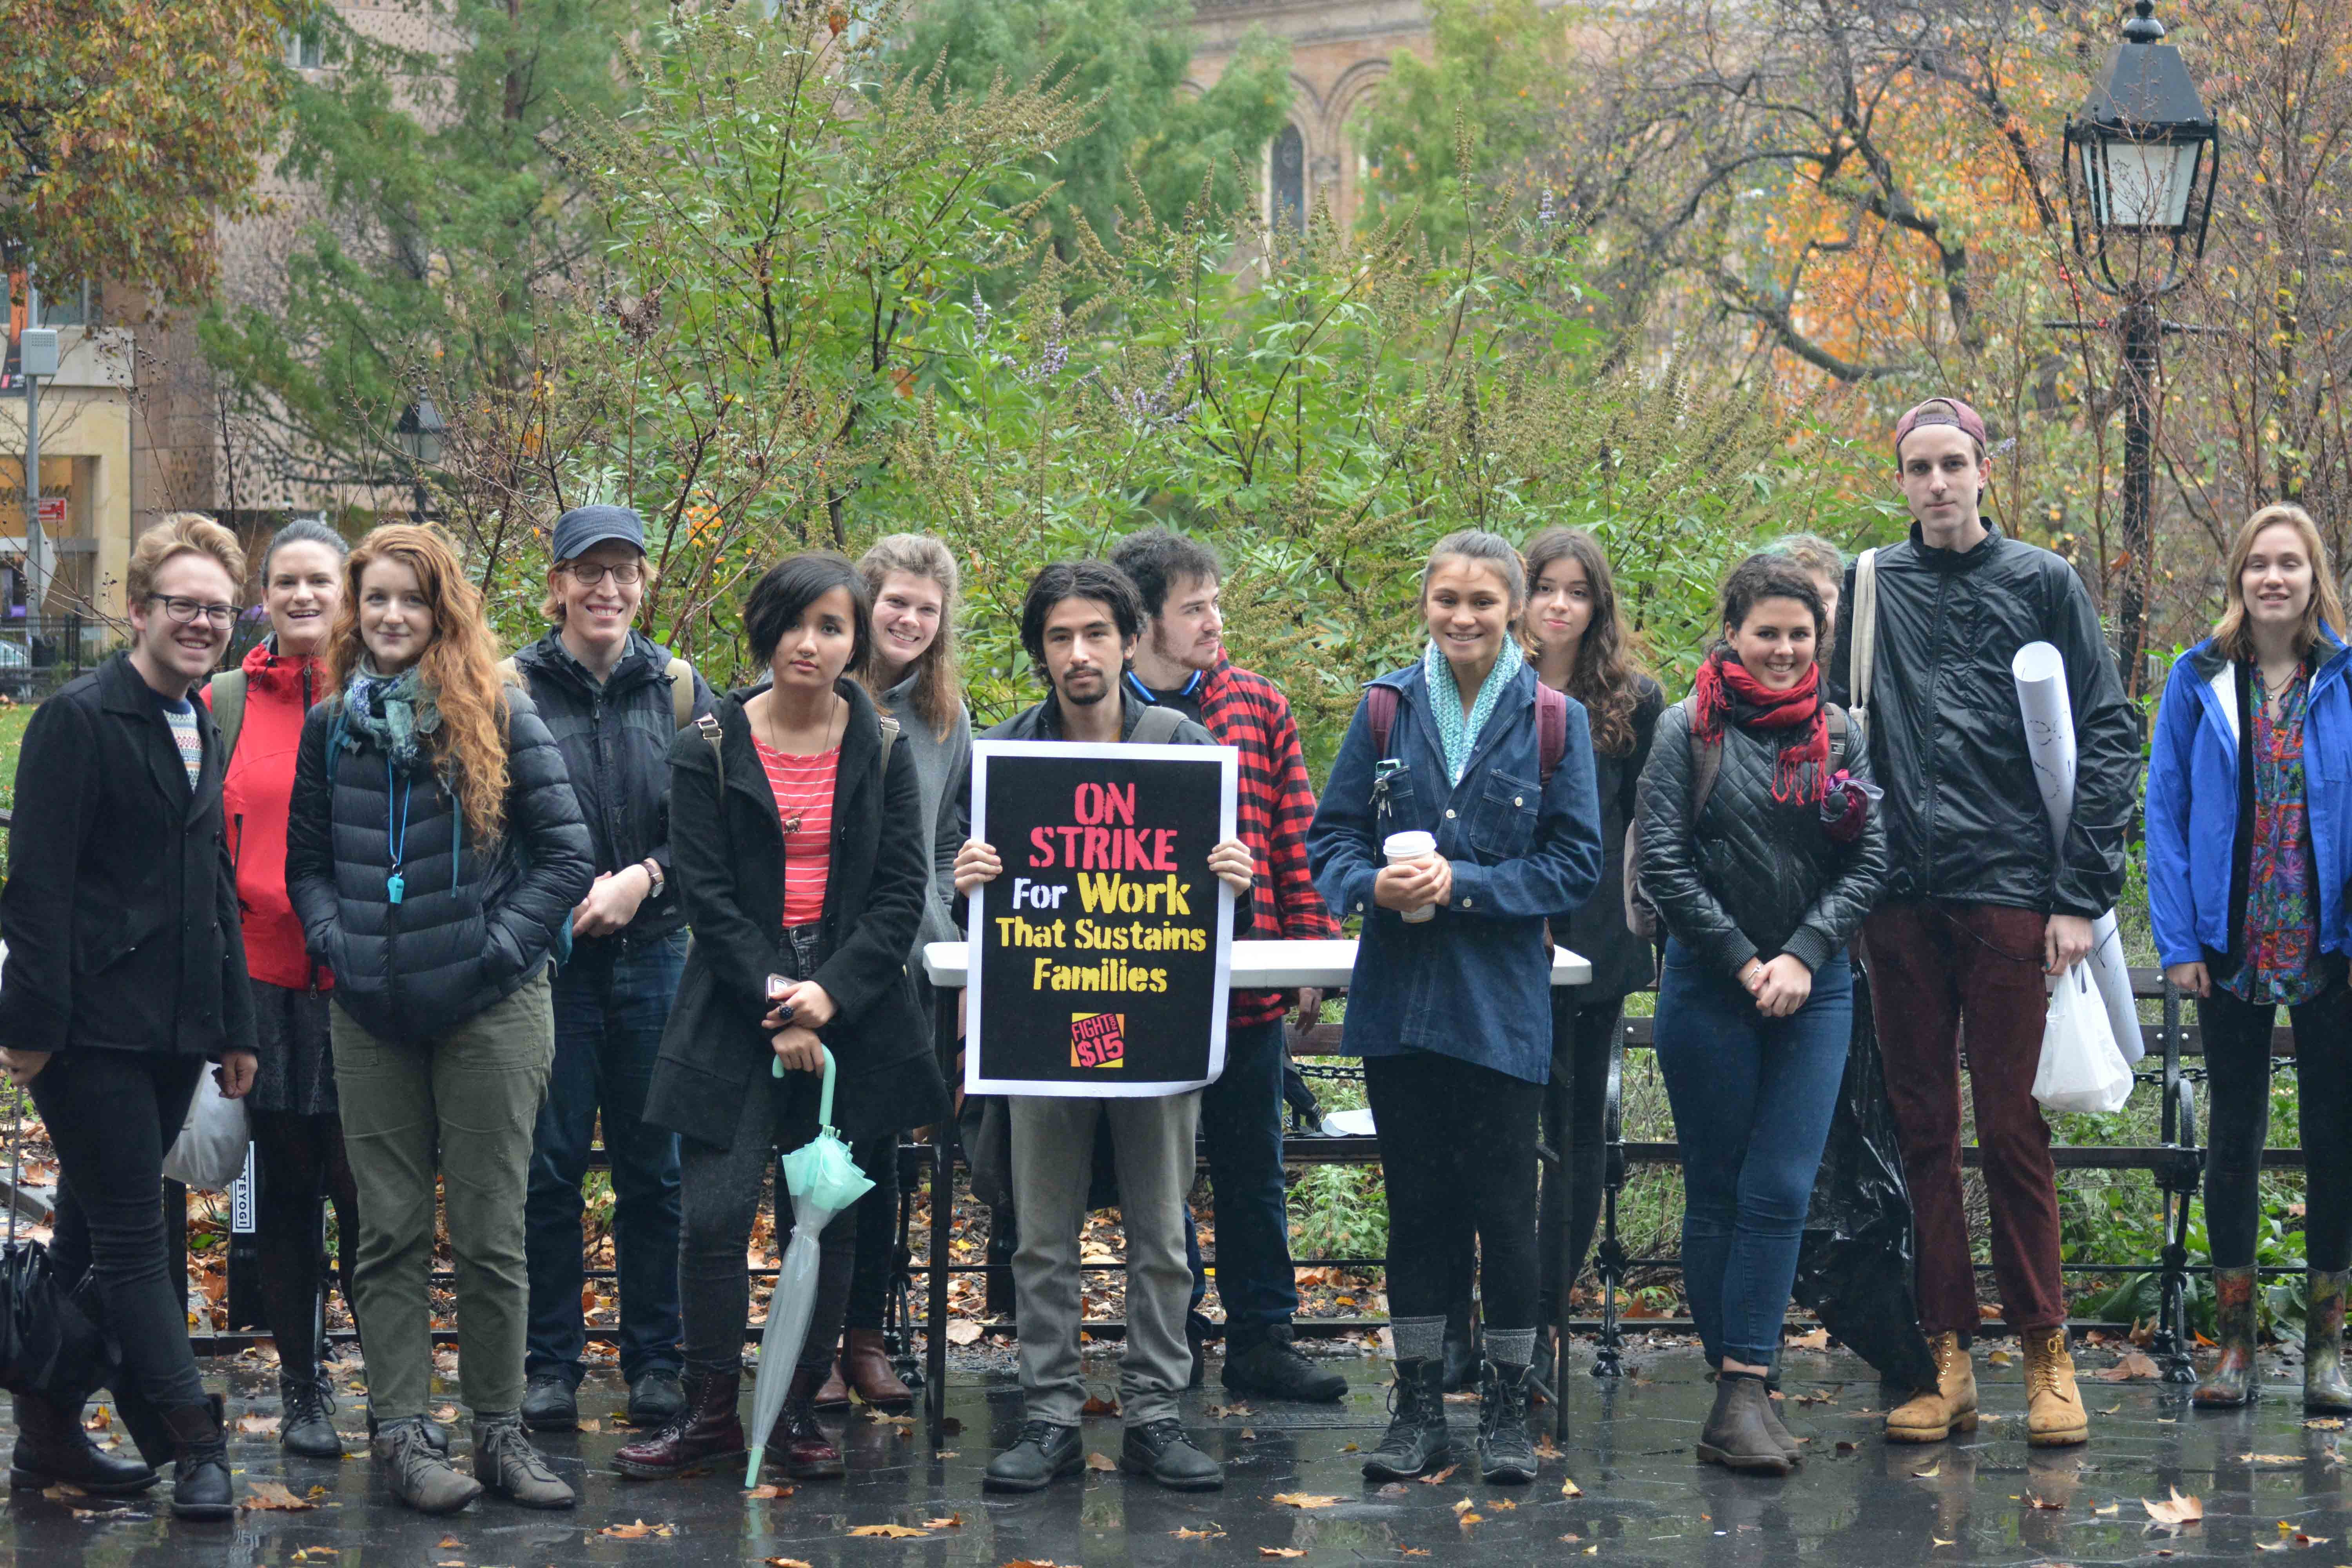 Braving the rain, students gather in Washington Square Park to protest wages provided by NYU for their student employees.